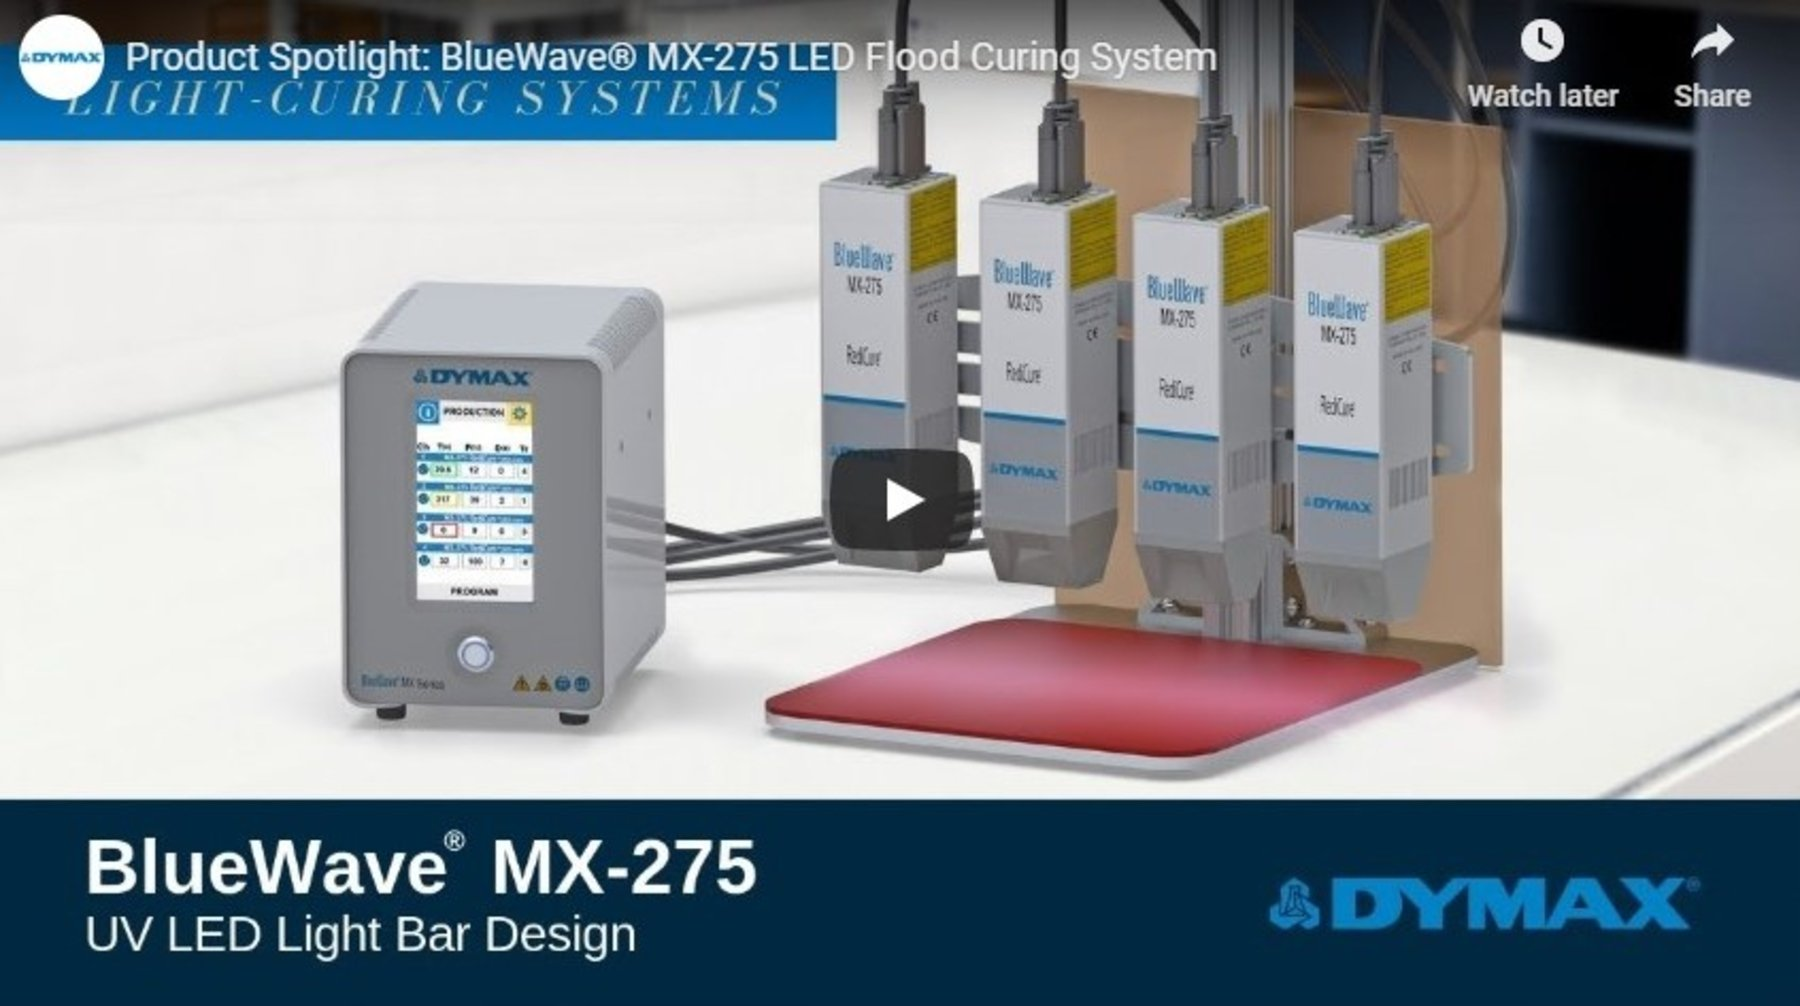 BlueWave® MX-275 LED Flood Curing System